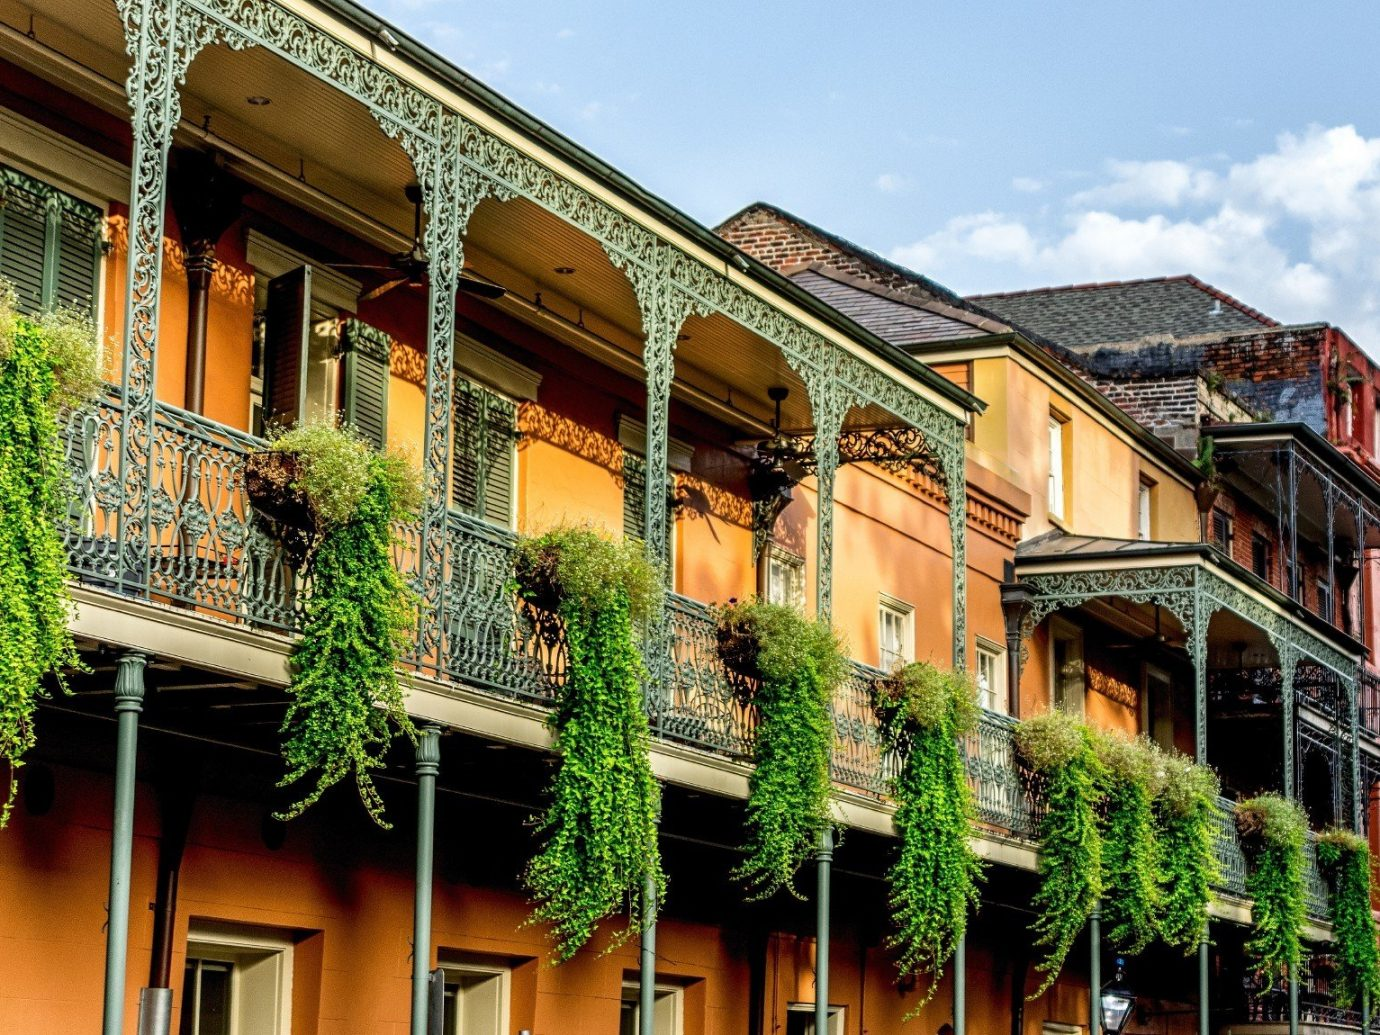 Boutique Hotels Hotels Travel Tips Trip Ideas building outdoor sky property house neighbourhood Town residential area Architecture facade estate home condominium Downtown real estate restaurant